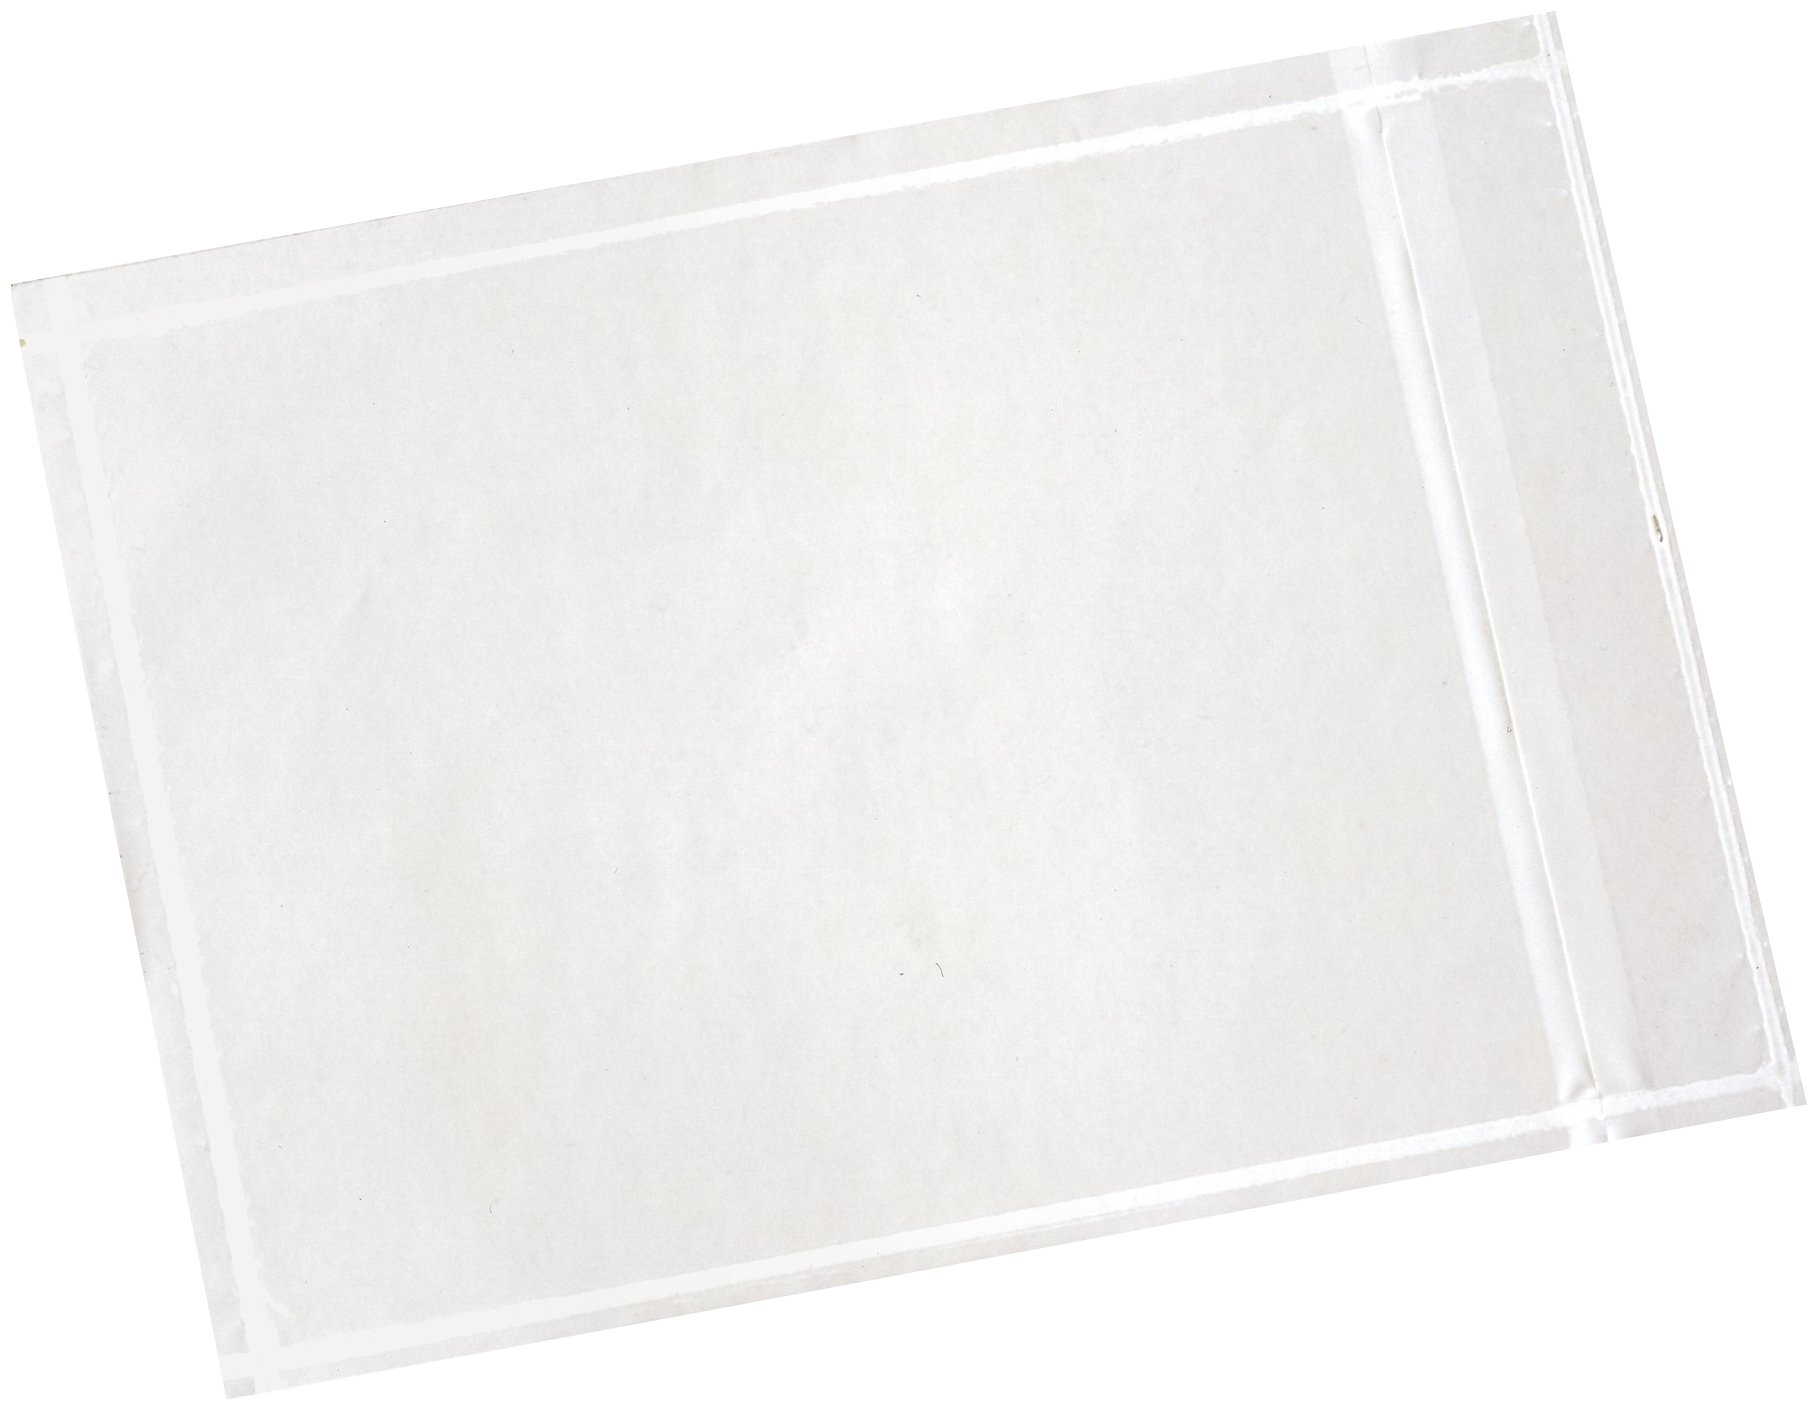 3M PLE-NP2 Non-Printed Packing List Envelope, 4.5'' Width, 6'' Length, Clear (Box of 1000) by 3M